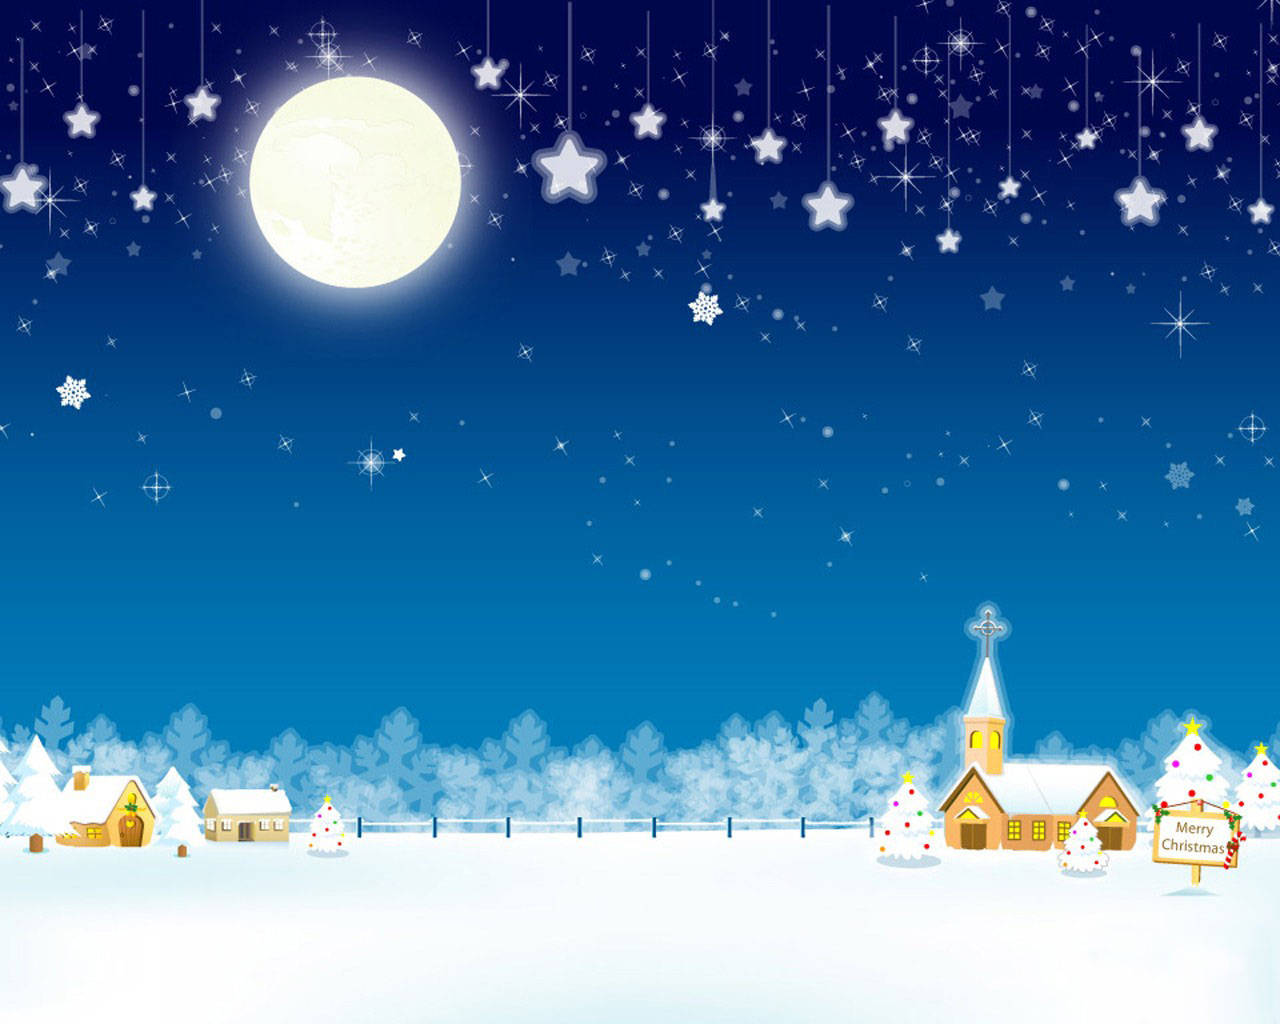 Free Christmas Background Pictures - WallpaperSafari